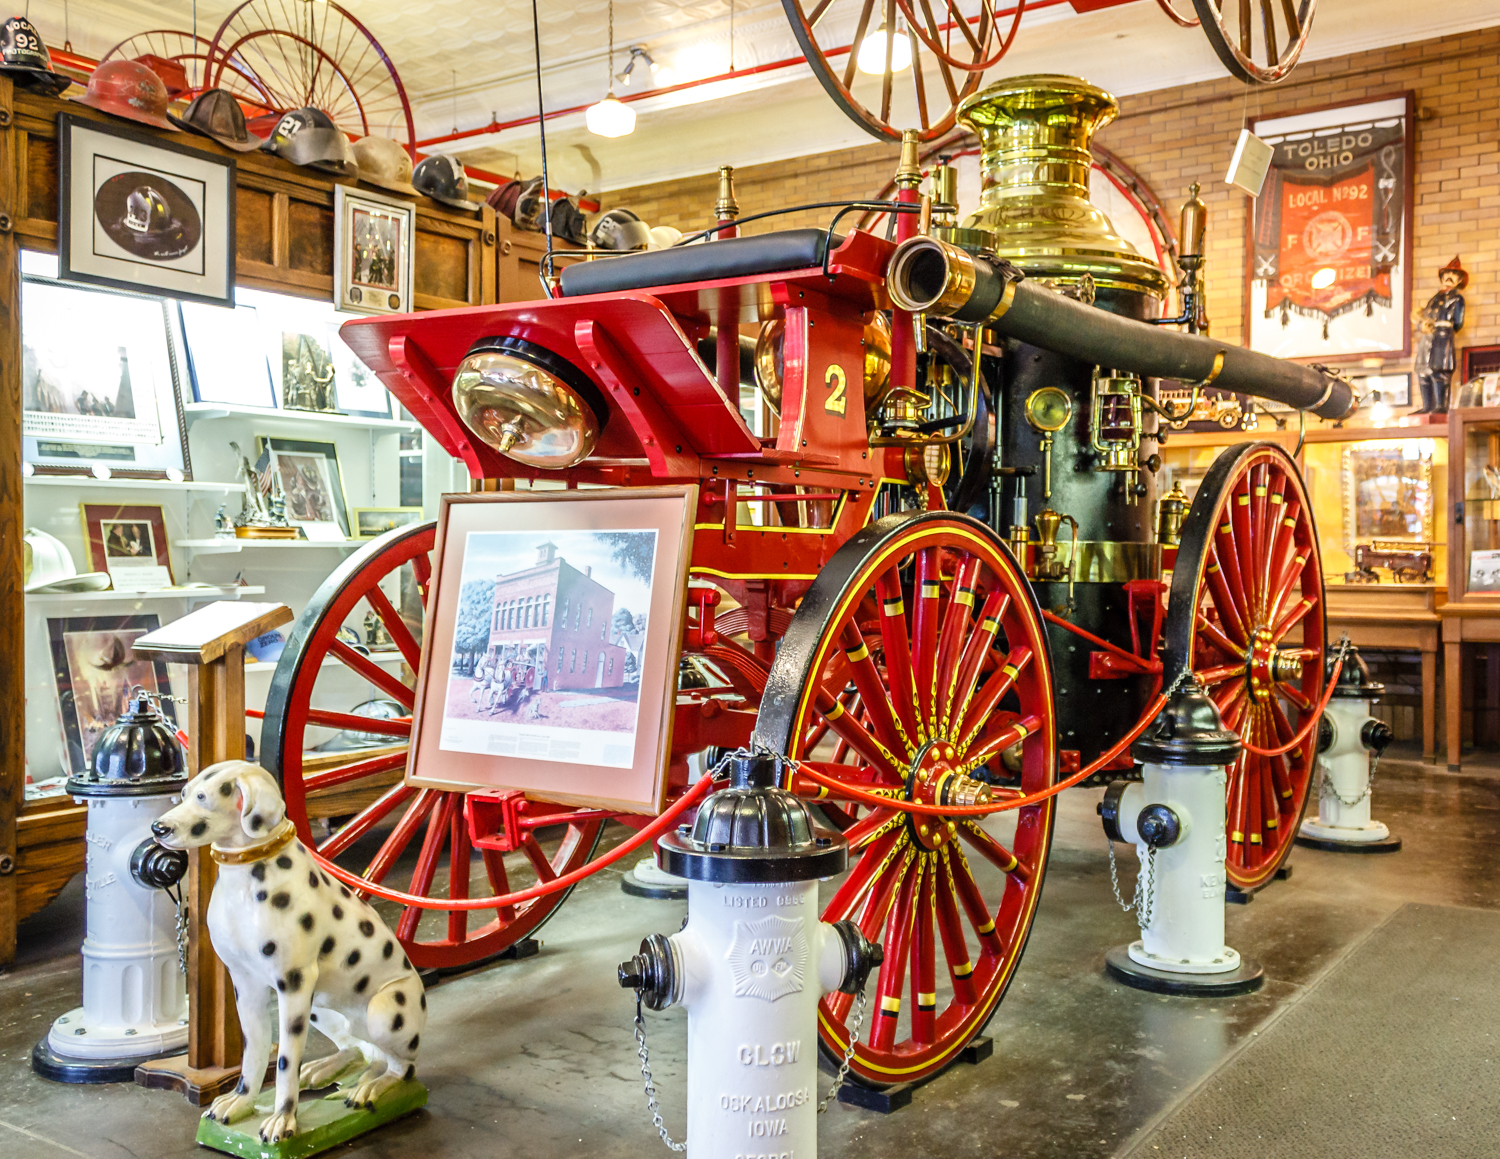 A vintage pumper on display at the museum.